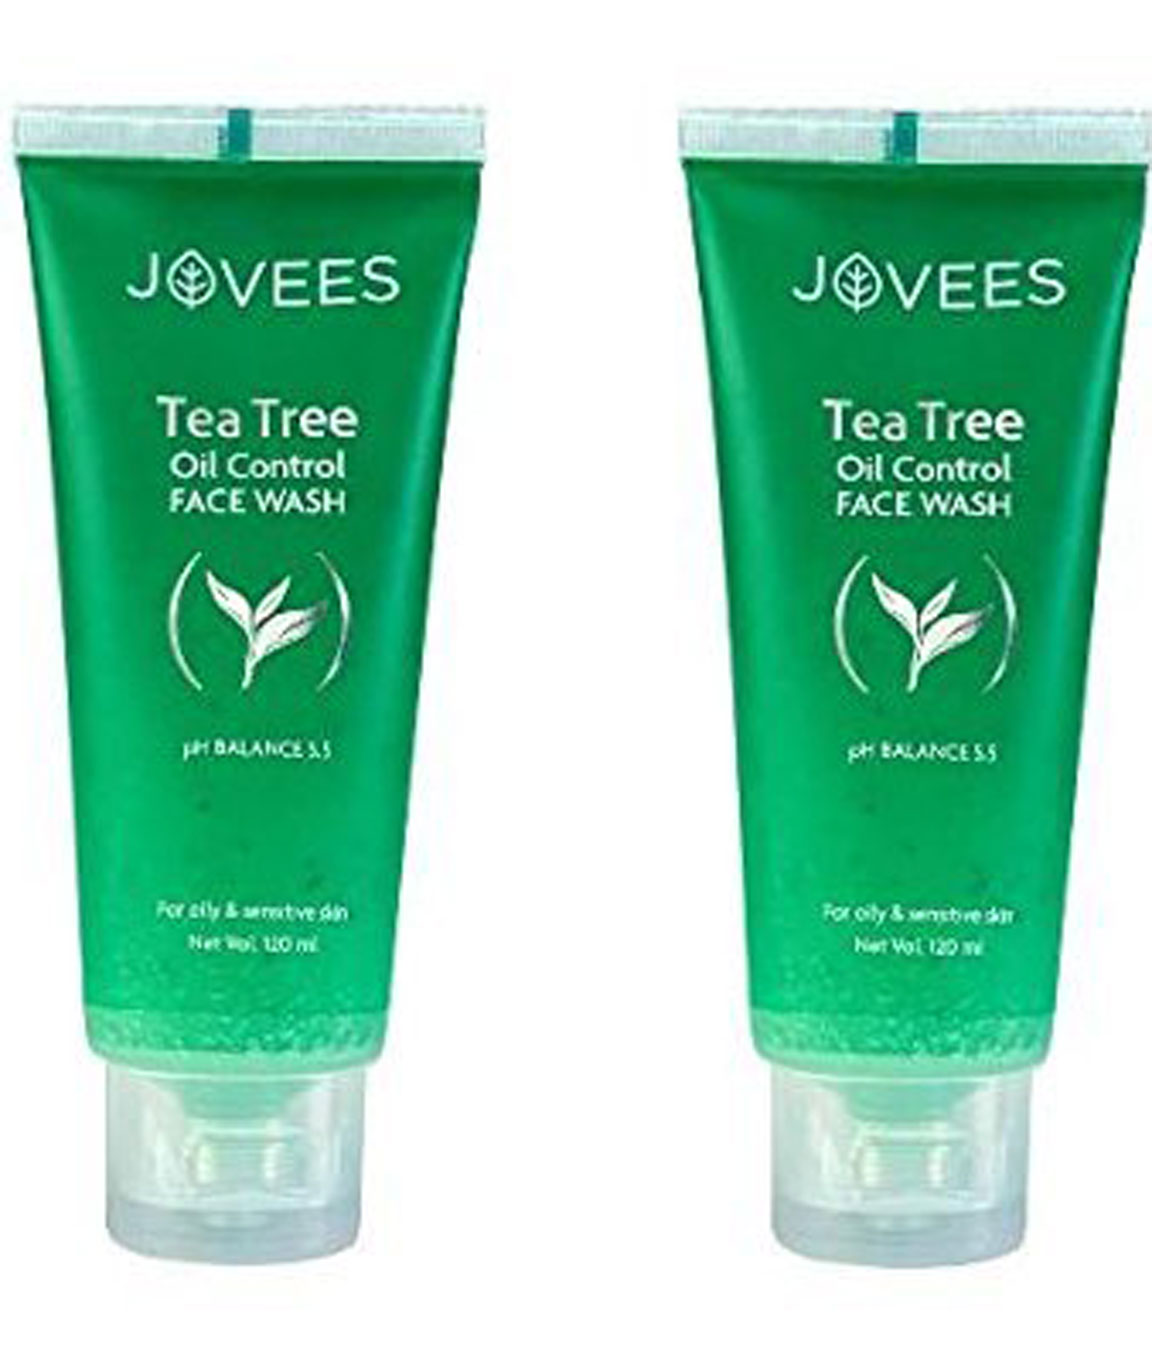 Jovees Tea Tree Oil Control Face Wash, 120 gm -Pack of 2